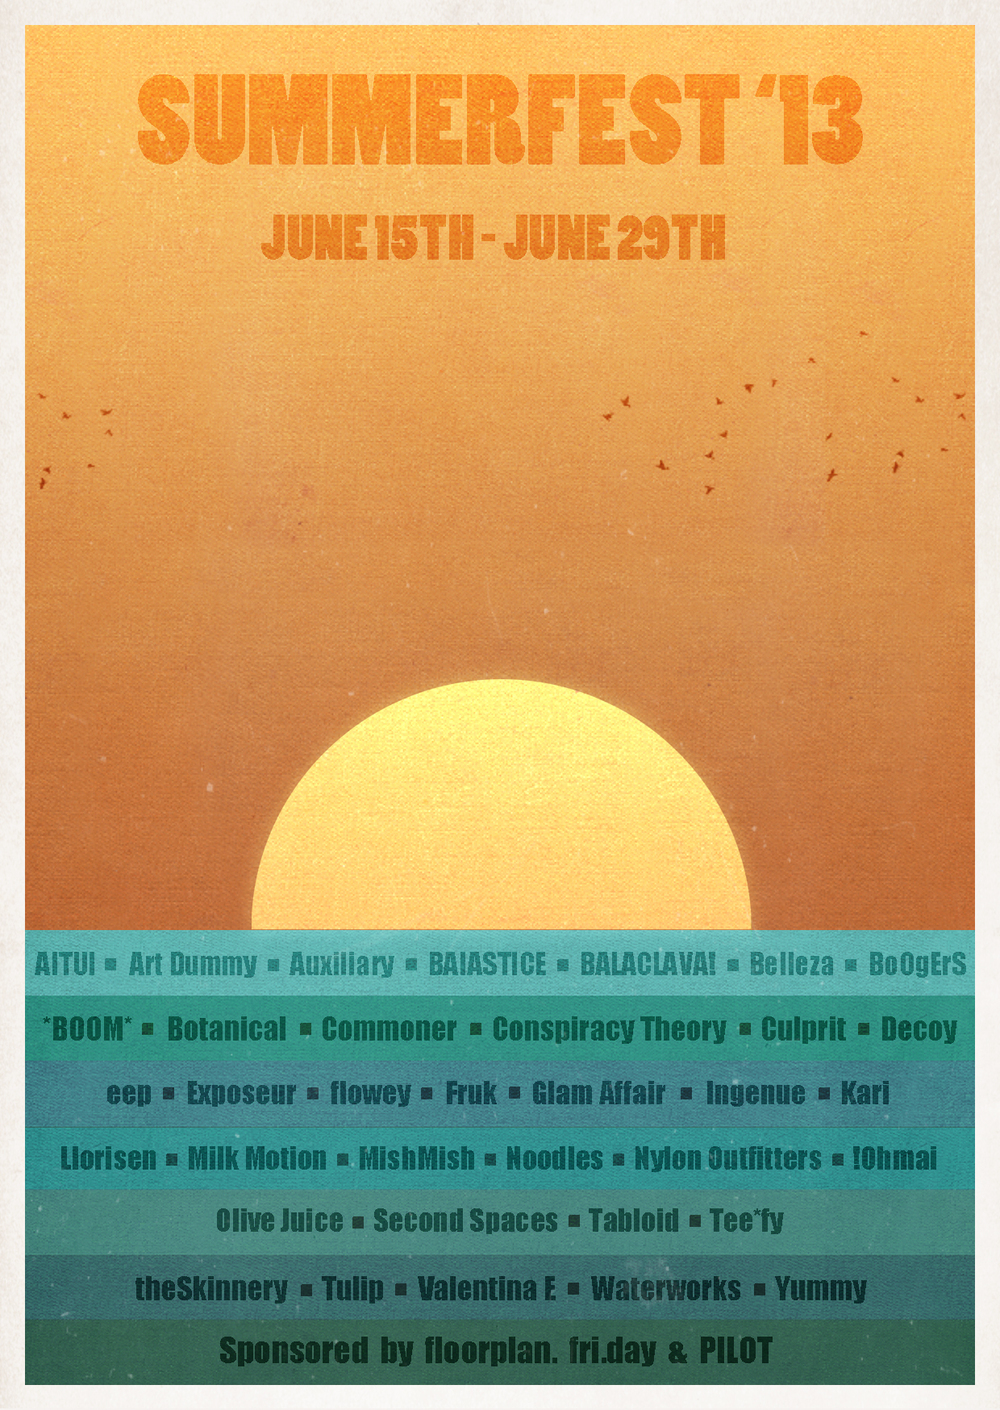 Summerfest Poster - Final (Seriously).jpg